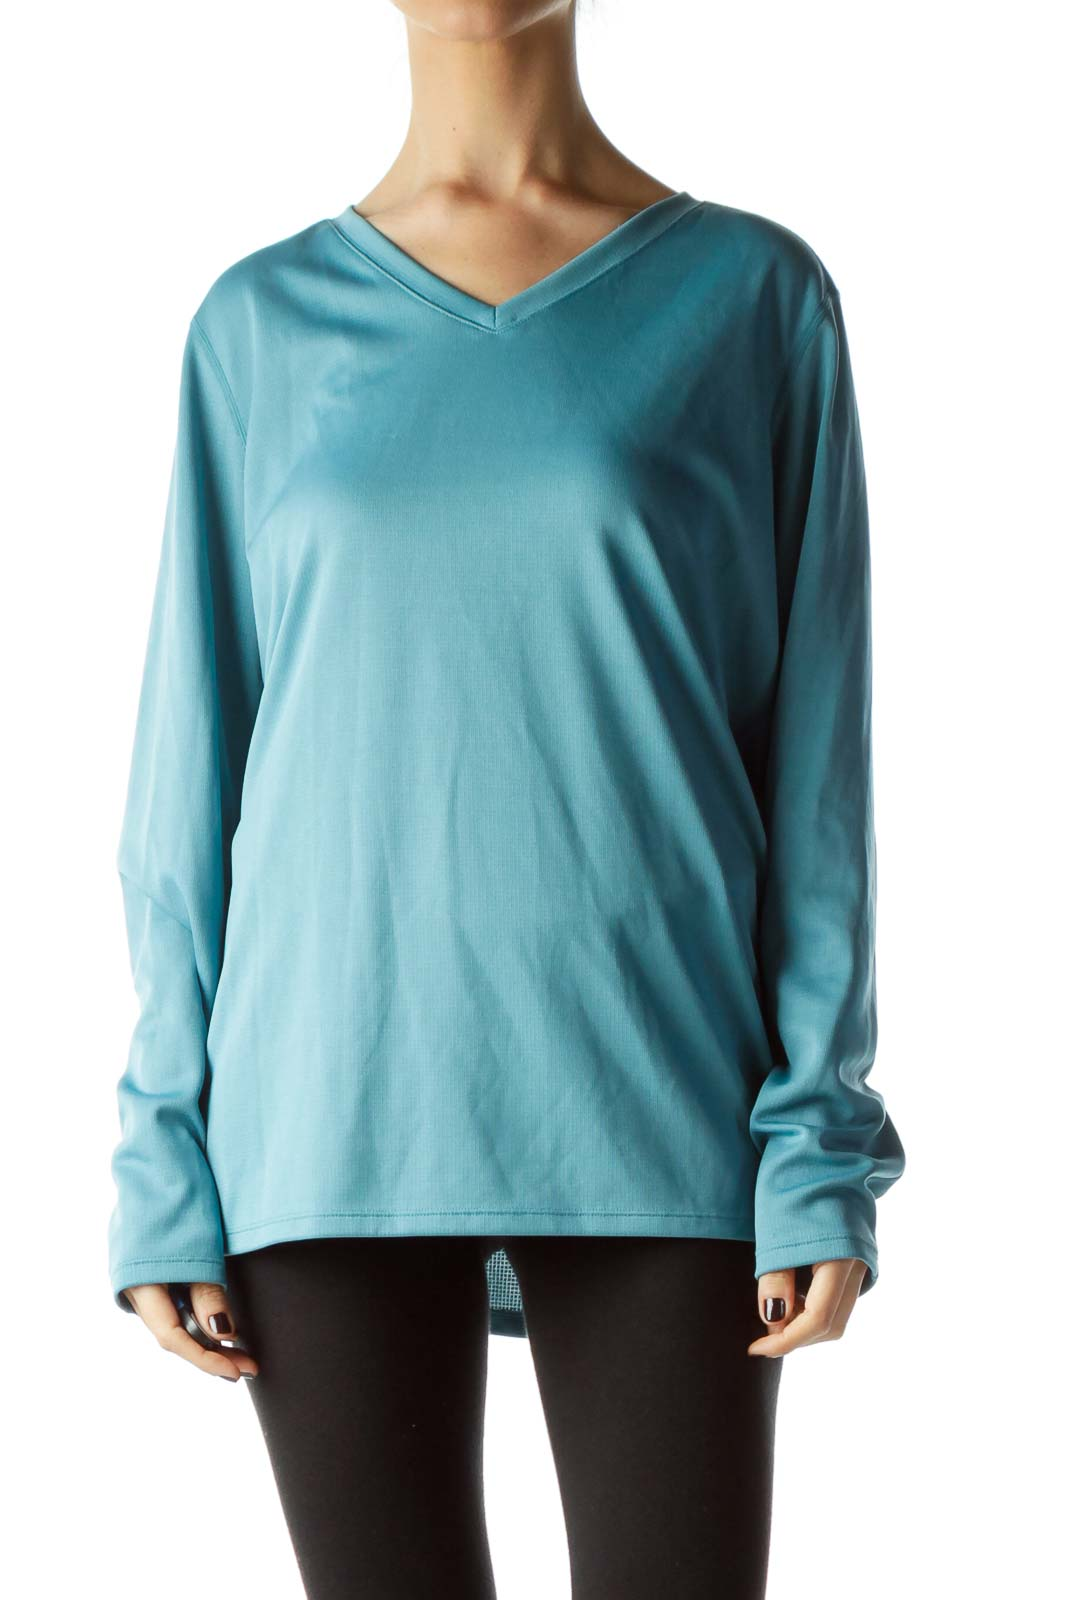 Teal Long Sleeve Stretch Sports Top Front